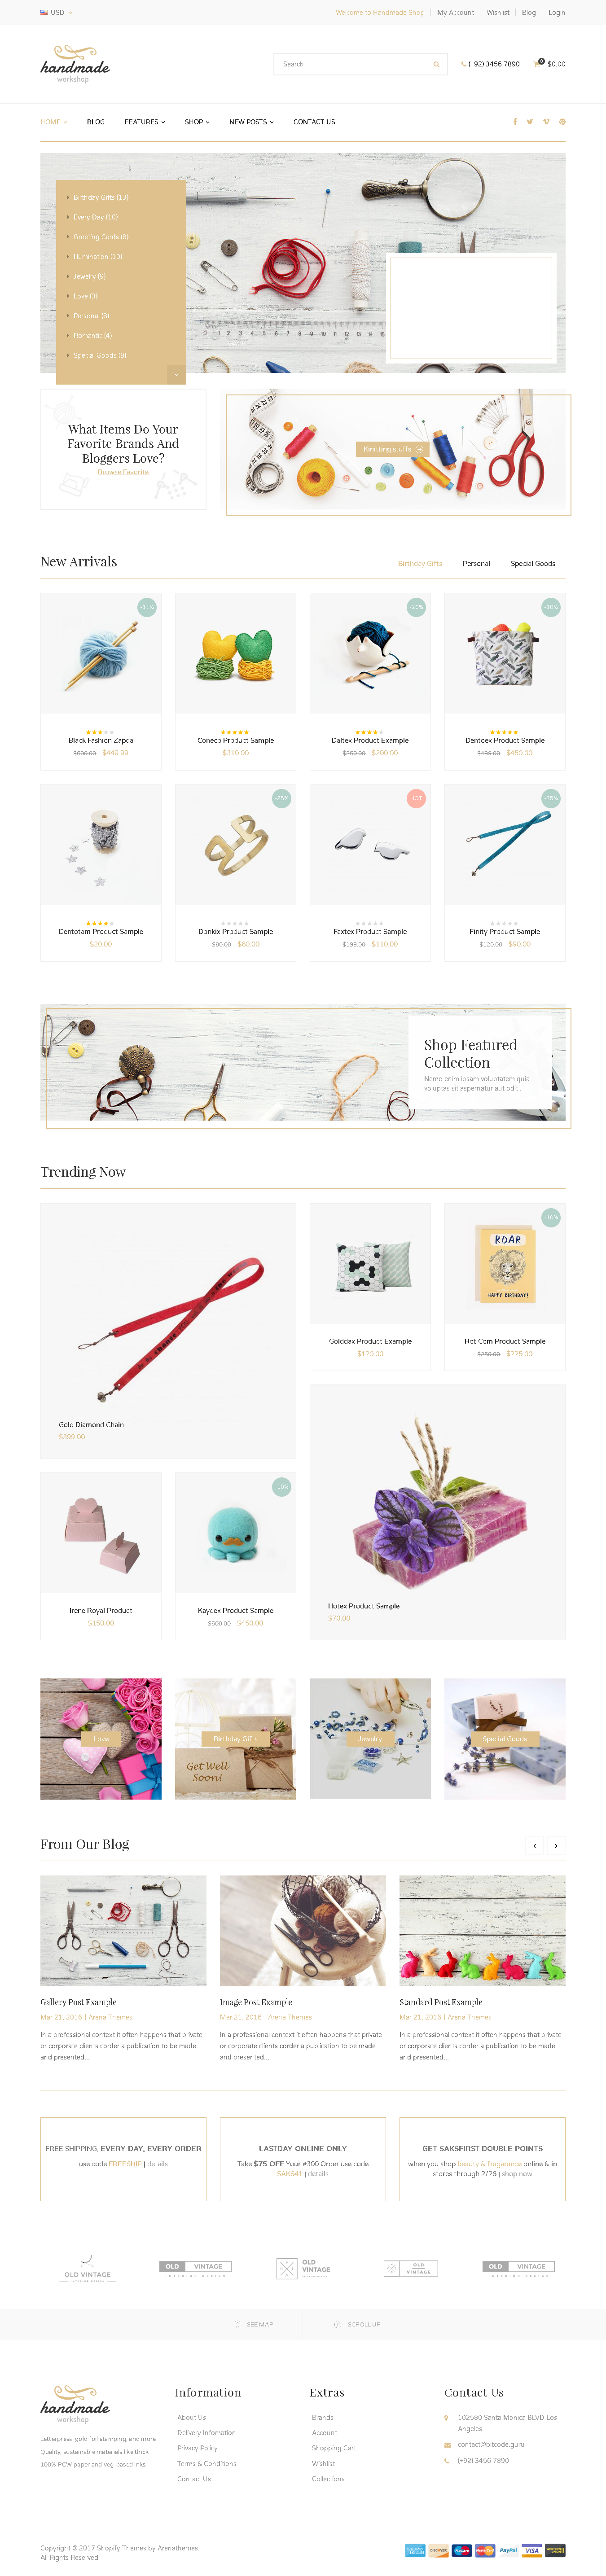 Shopify Themes For Jewelry Store - Handmade Responsive Shopify Theme - Craft Jewelry Artwork Vintage and Creative Goods